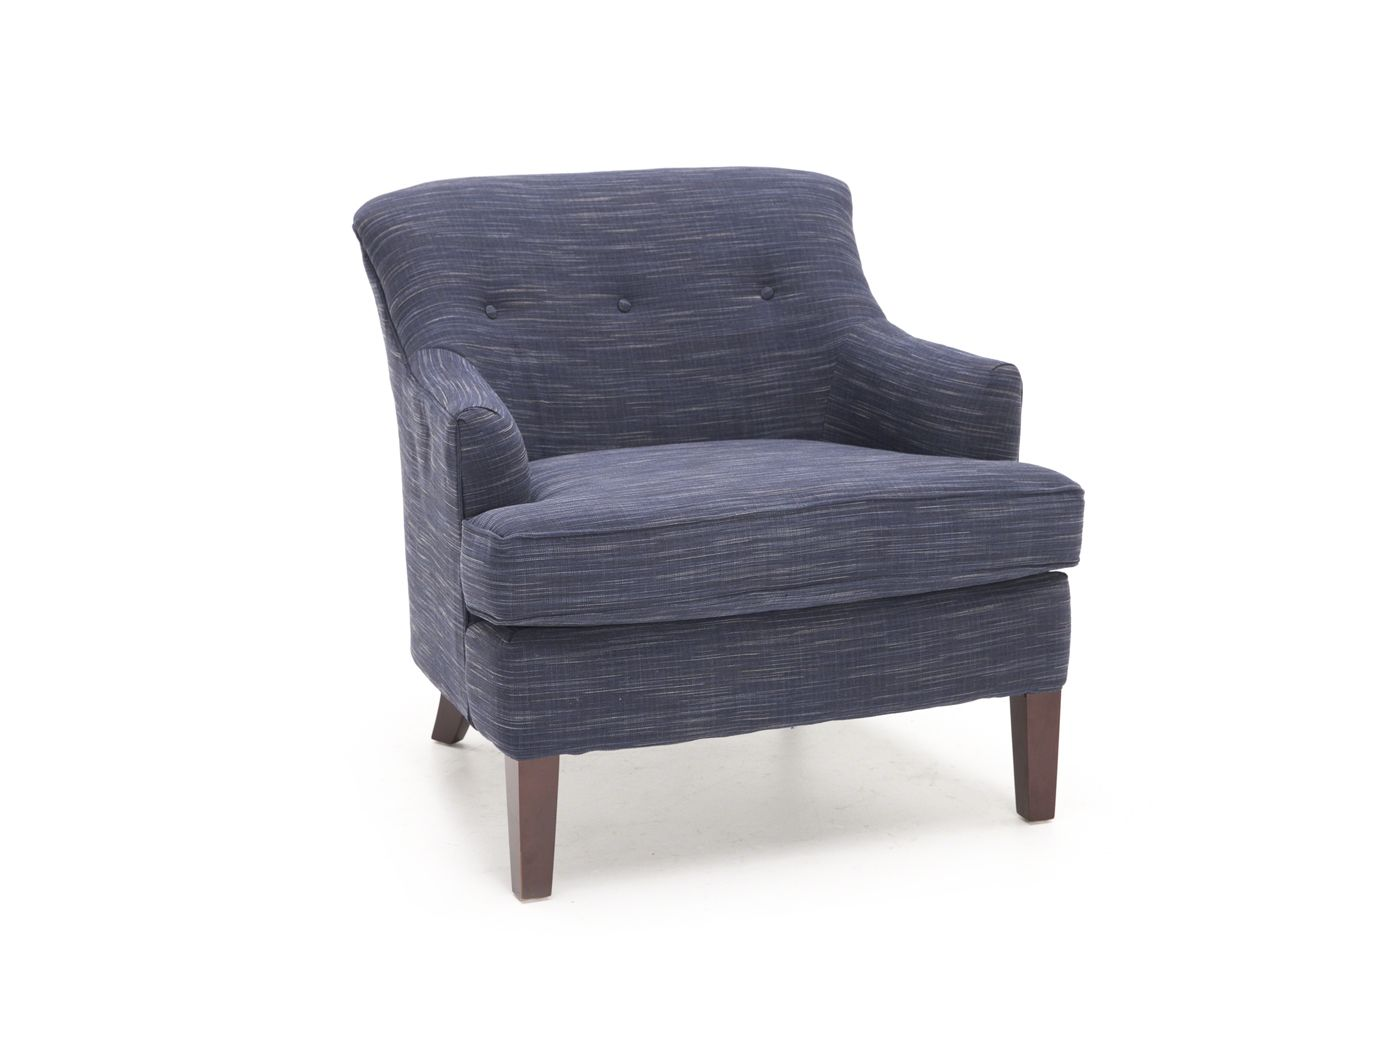 Trisha Yearwood Elizabeth Chair Steinhafels Gs Trisha Yearwood